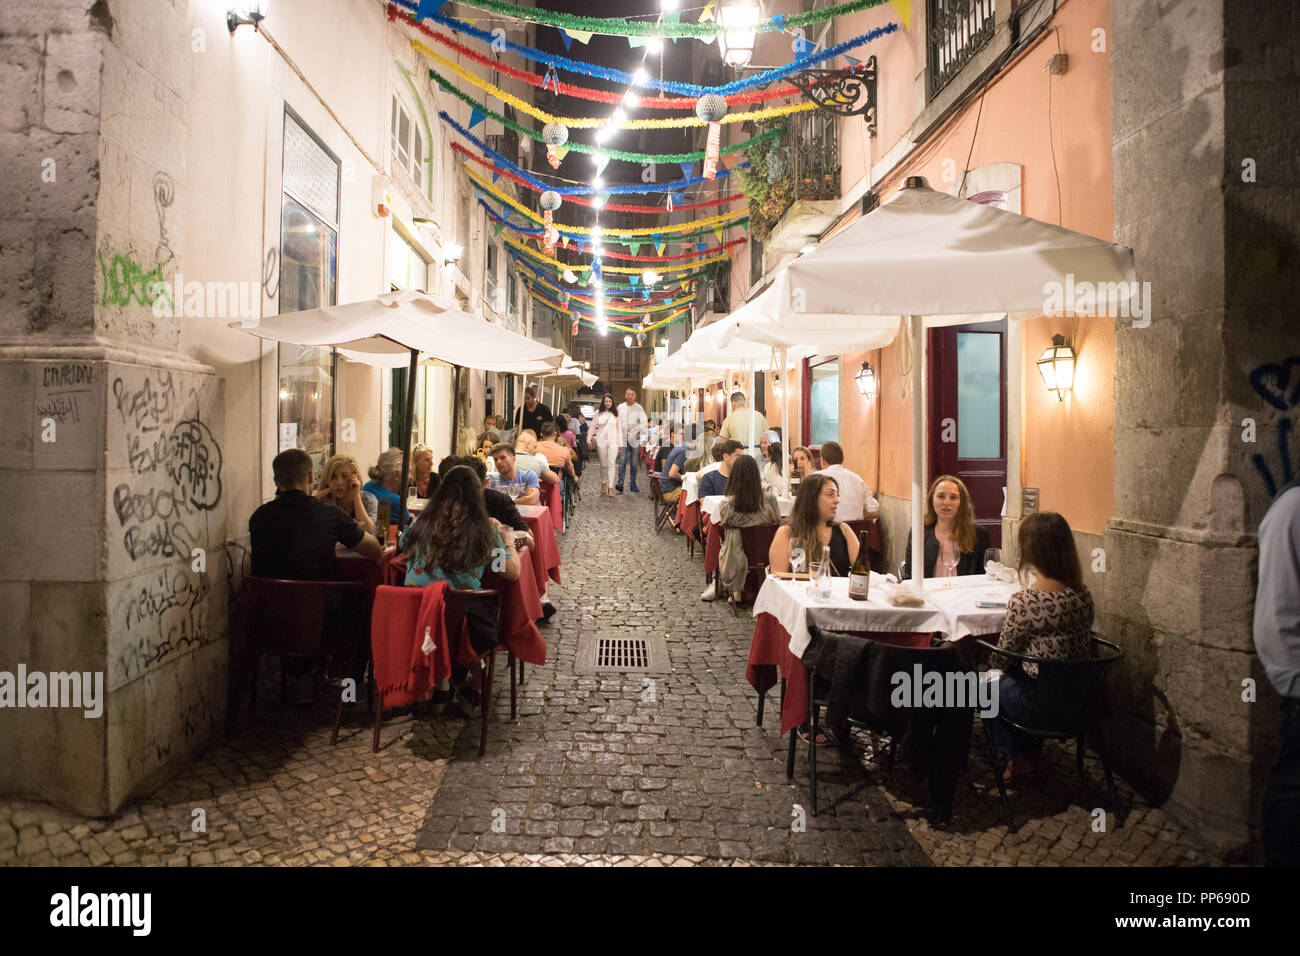 Alfama district Lisbon, people have a dinner in tipical restaurant in the street. - Stock Image